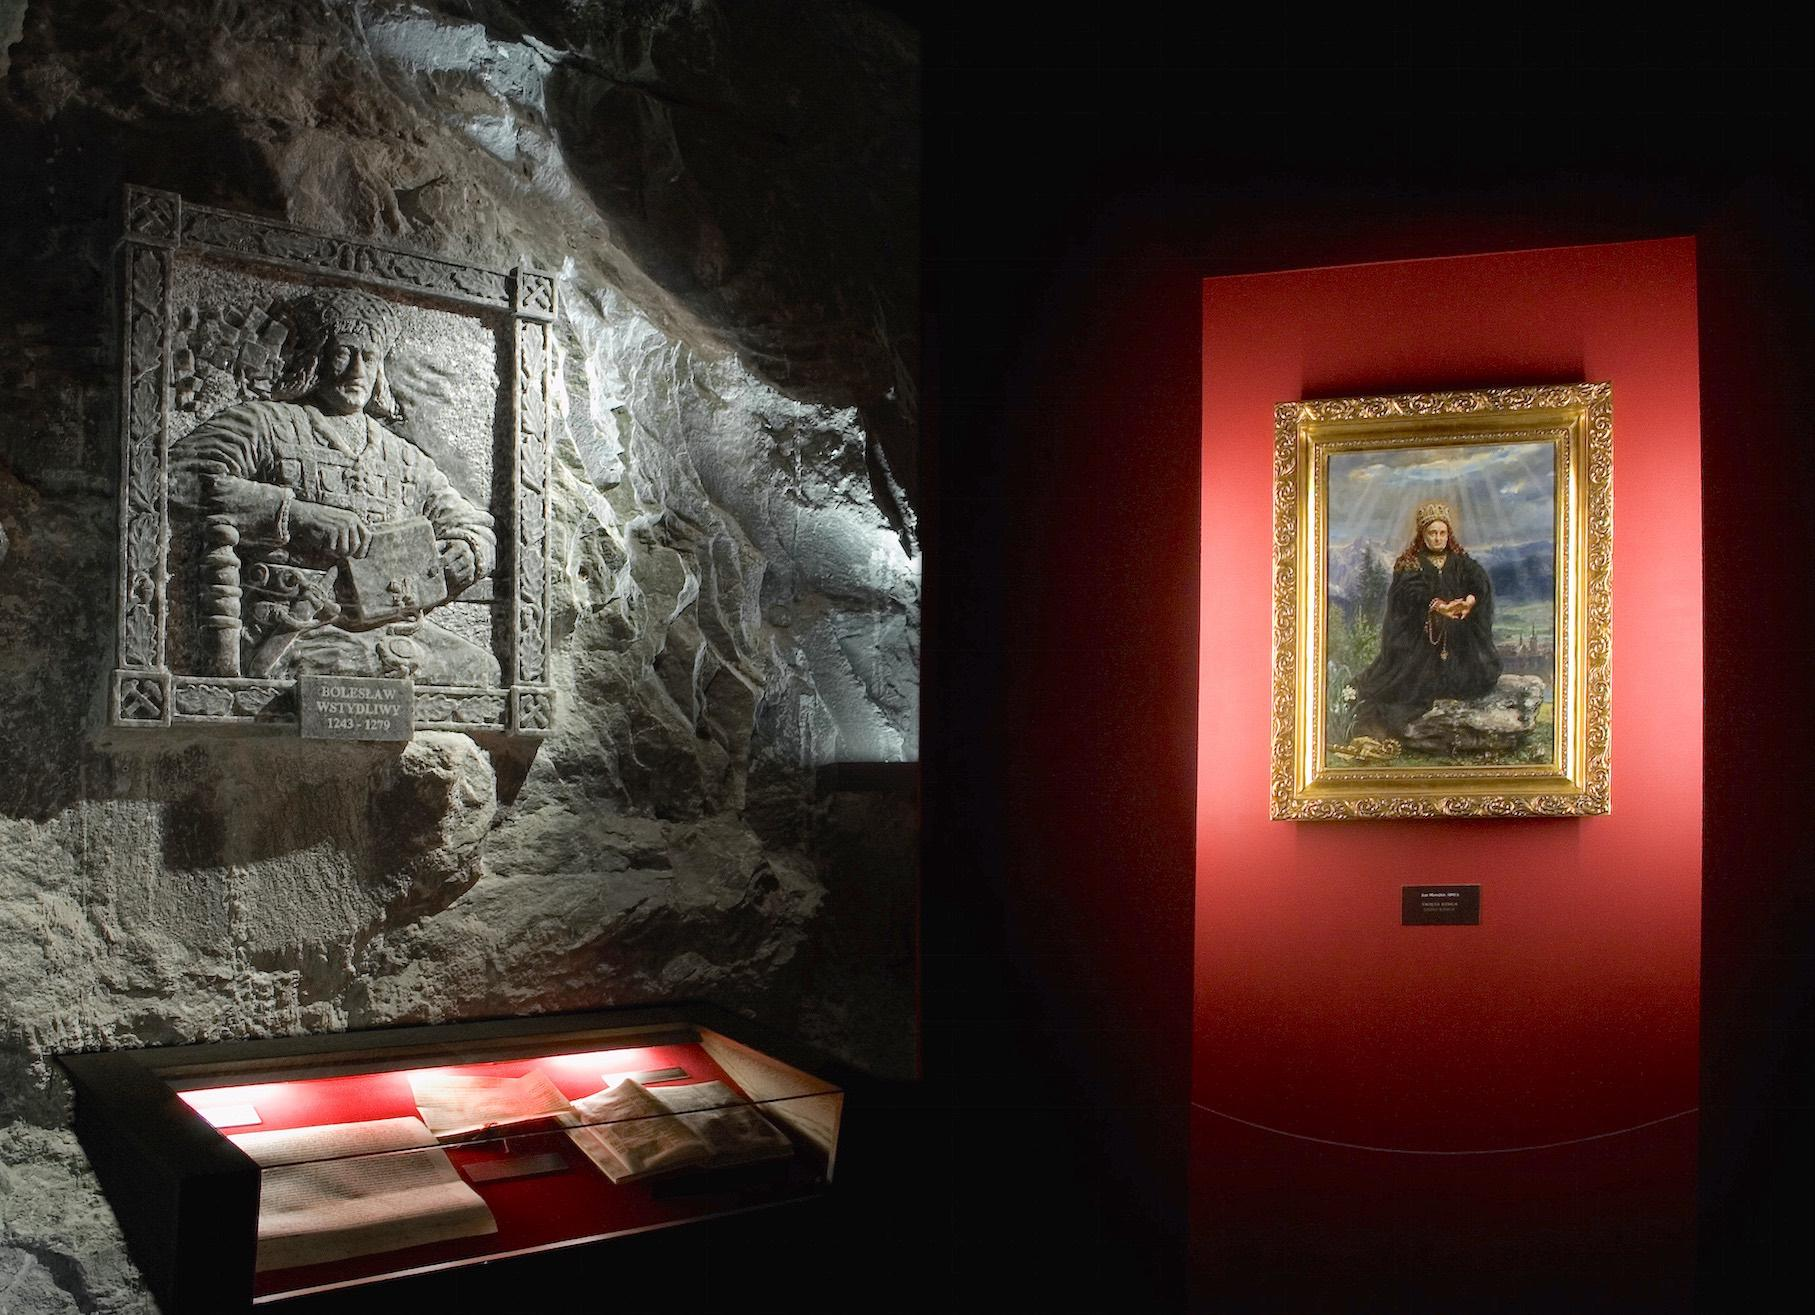 Image of St. Kinga painted by Jan Matejko, a renowned Polish painter, and a bas-relief sculpture of her husband, Duke Boleslaus, are presented in the Saltworks Museum in Wieliczka Salt Mine. – © Artur Grzybowski